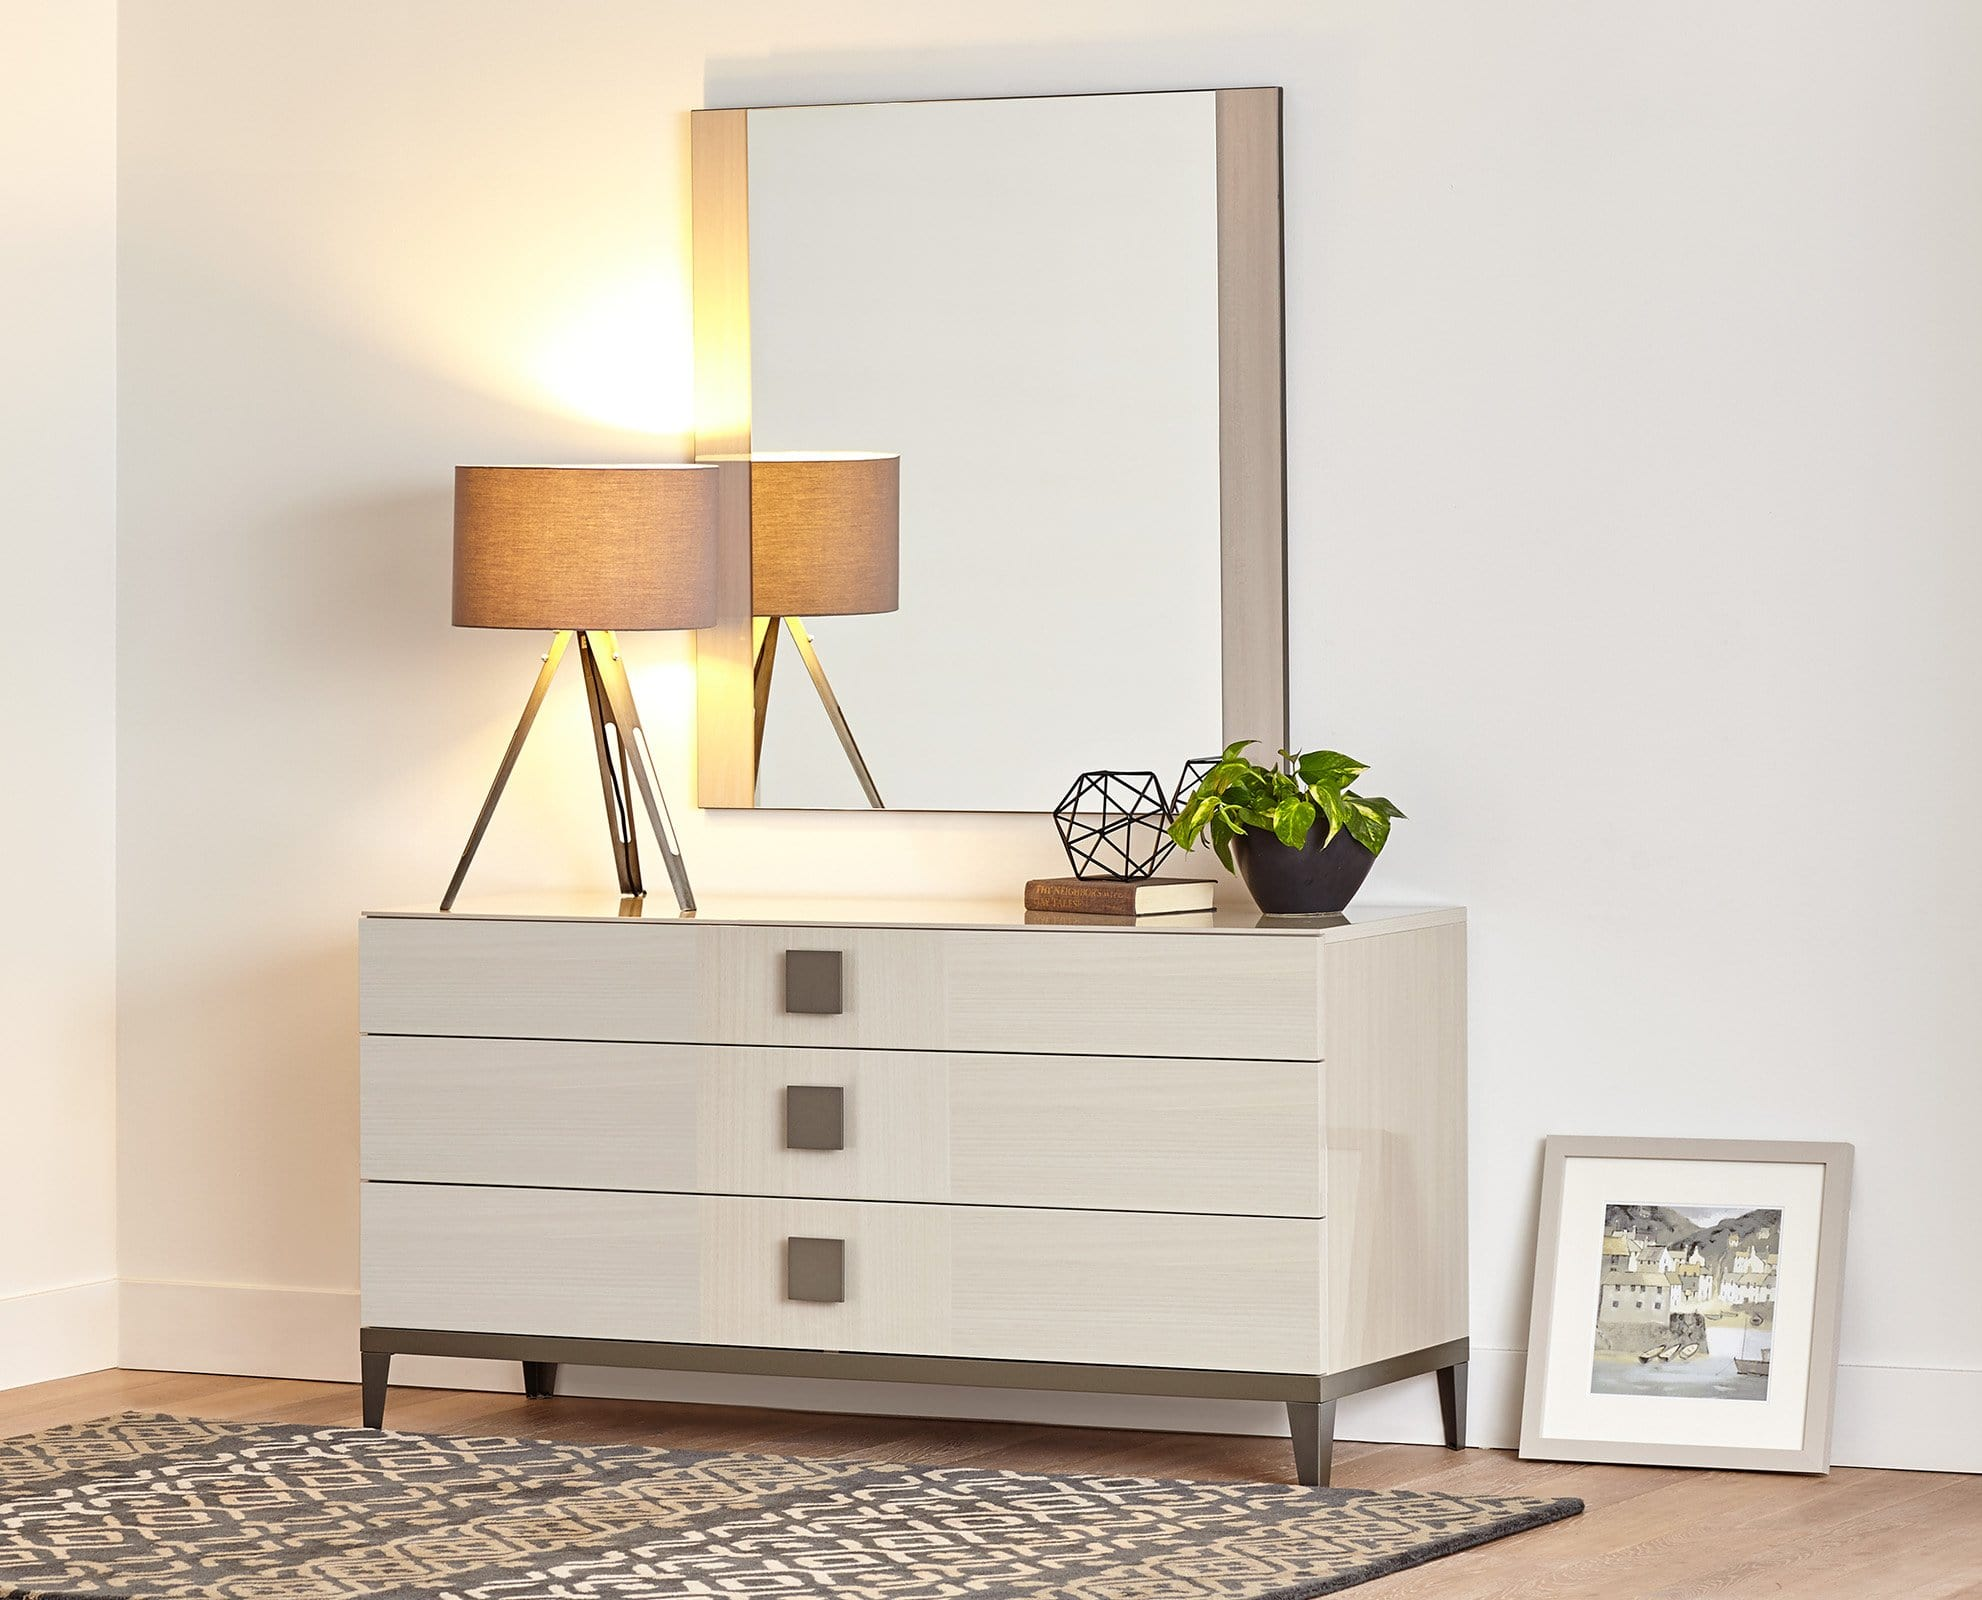 Monchiaro Double Dresser